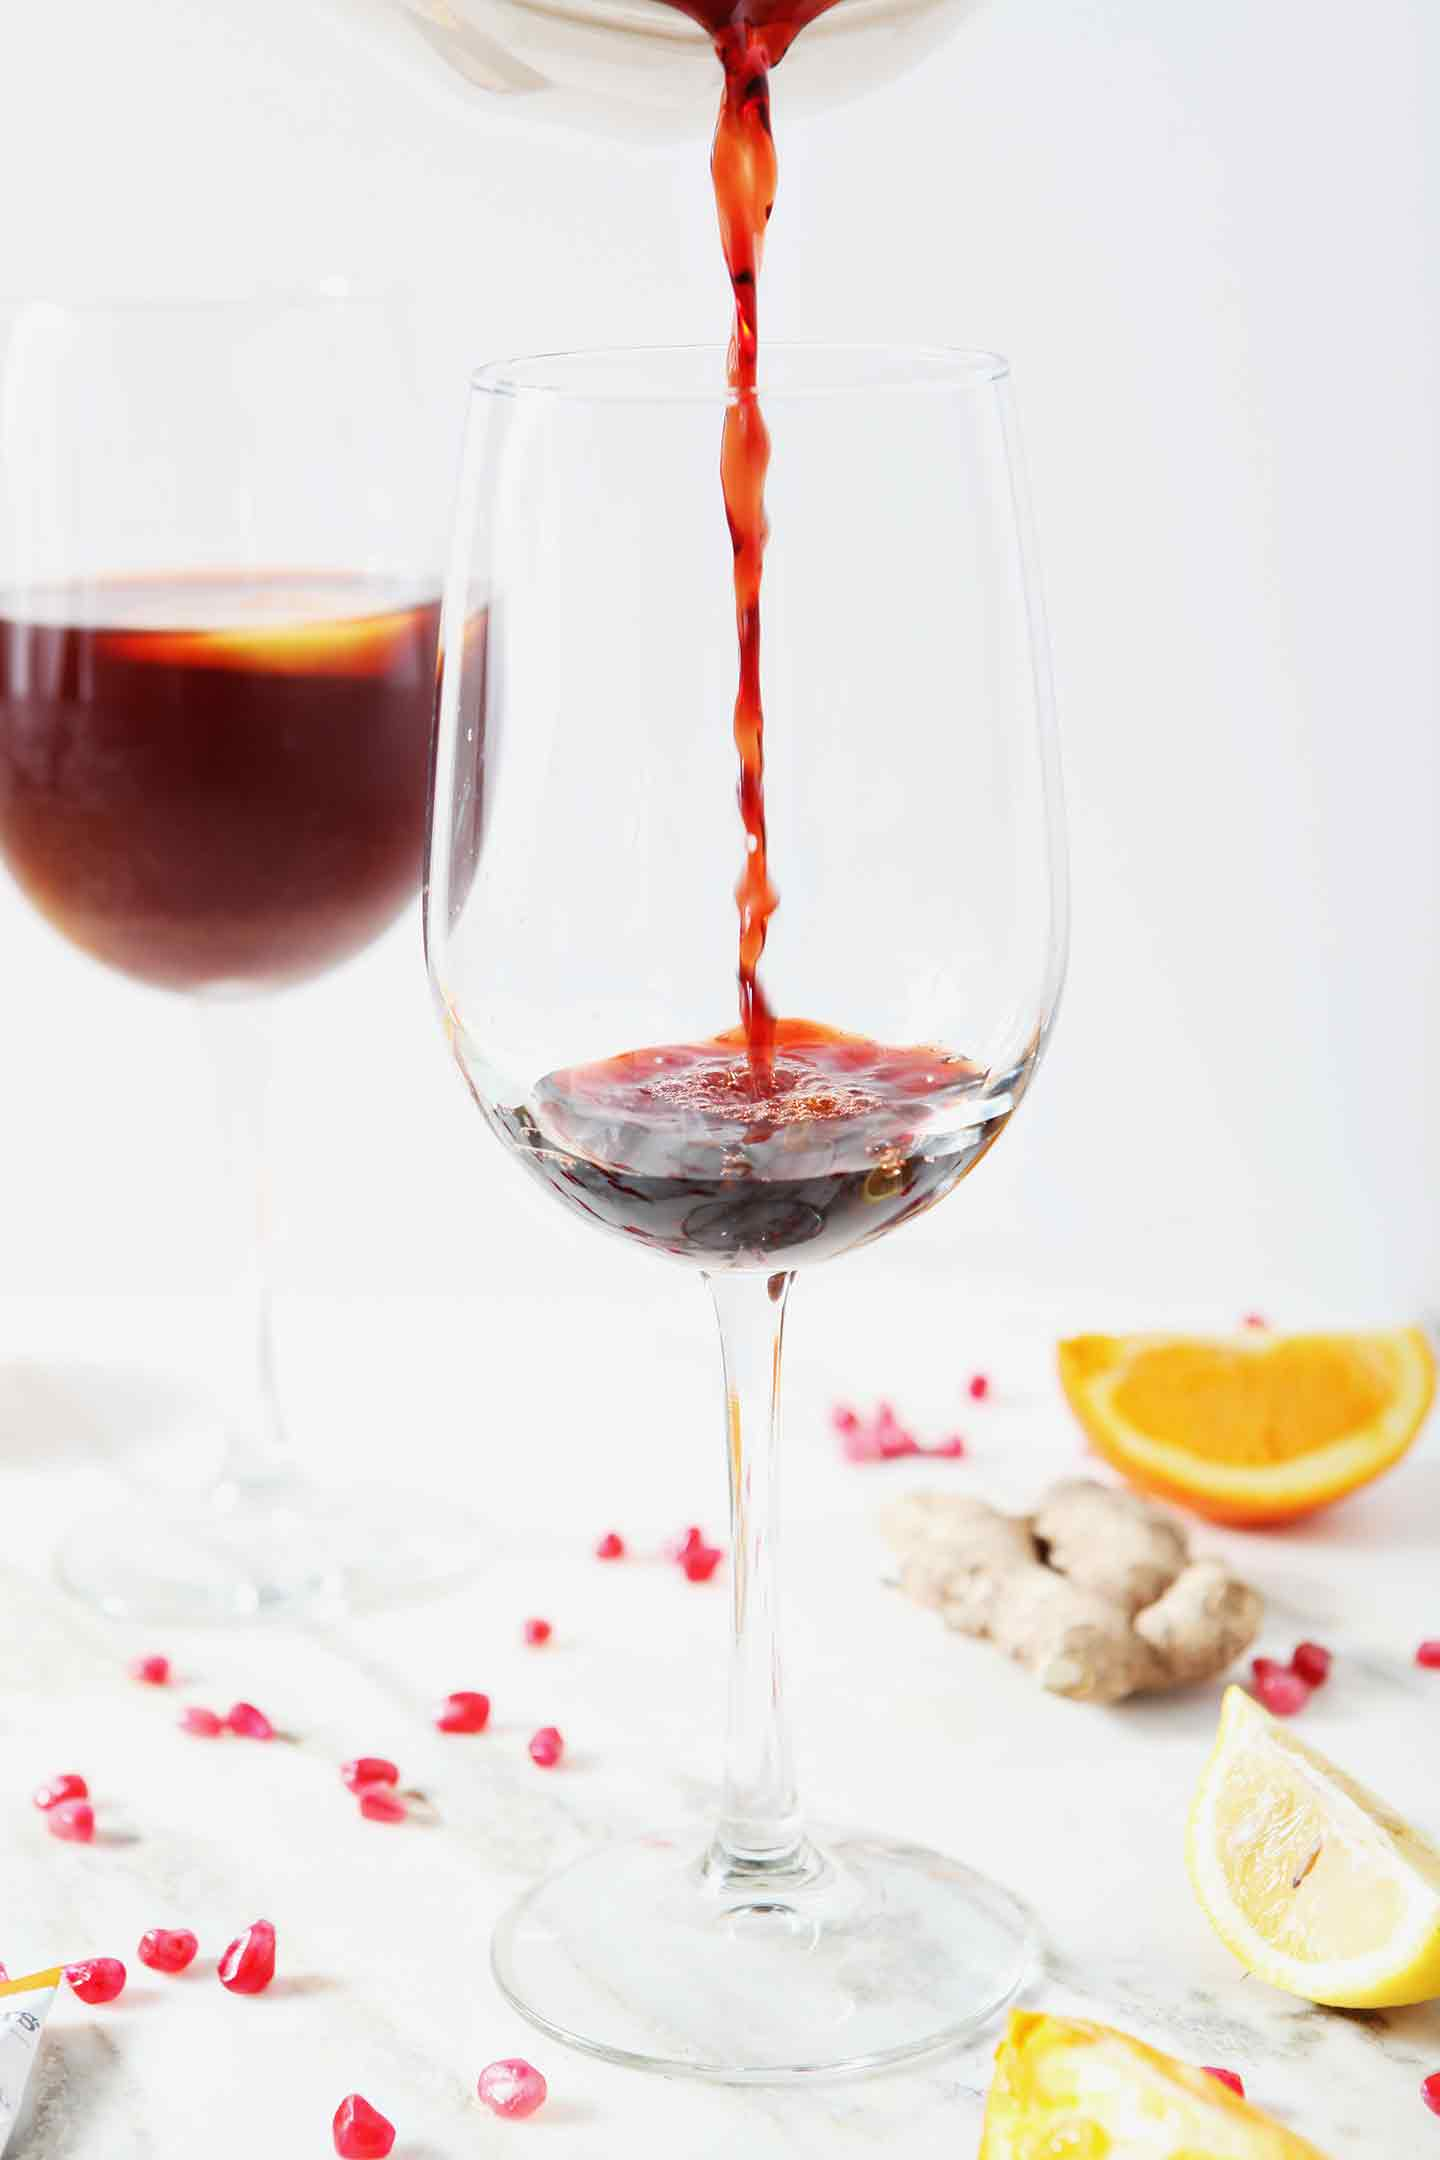 Pomegranate juice is poured into a wine glass to begin making a Pomegranate Ginger Orange Sparkling Mocktail